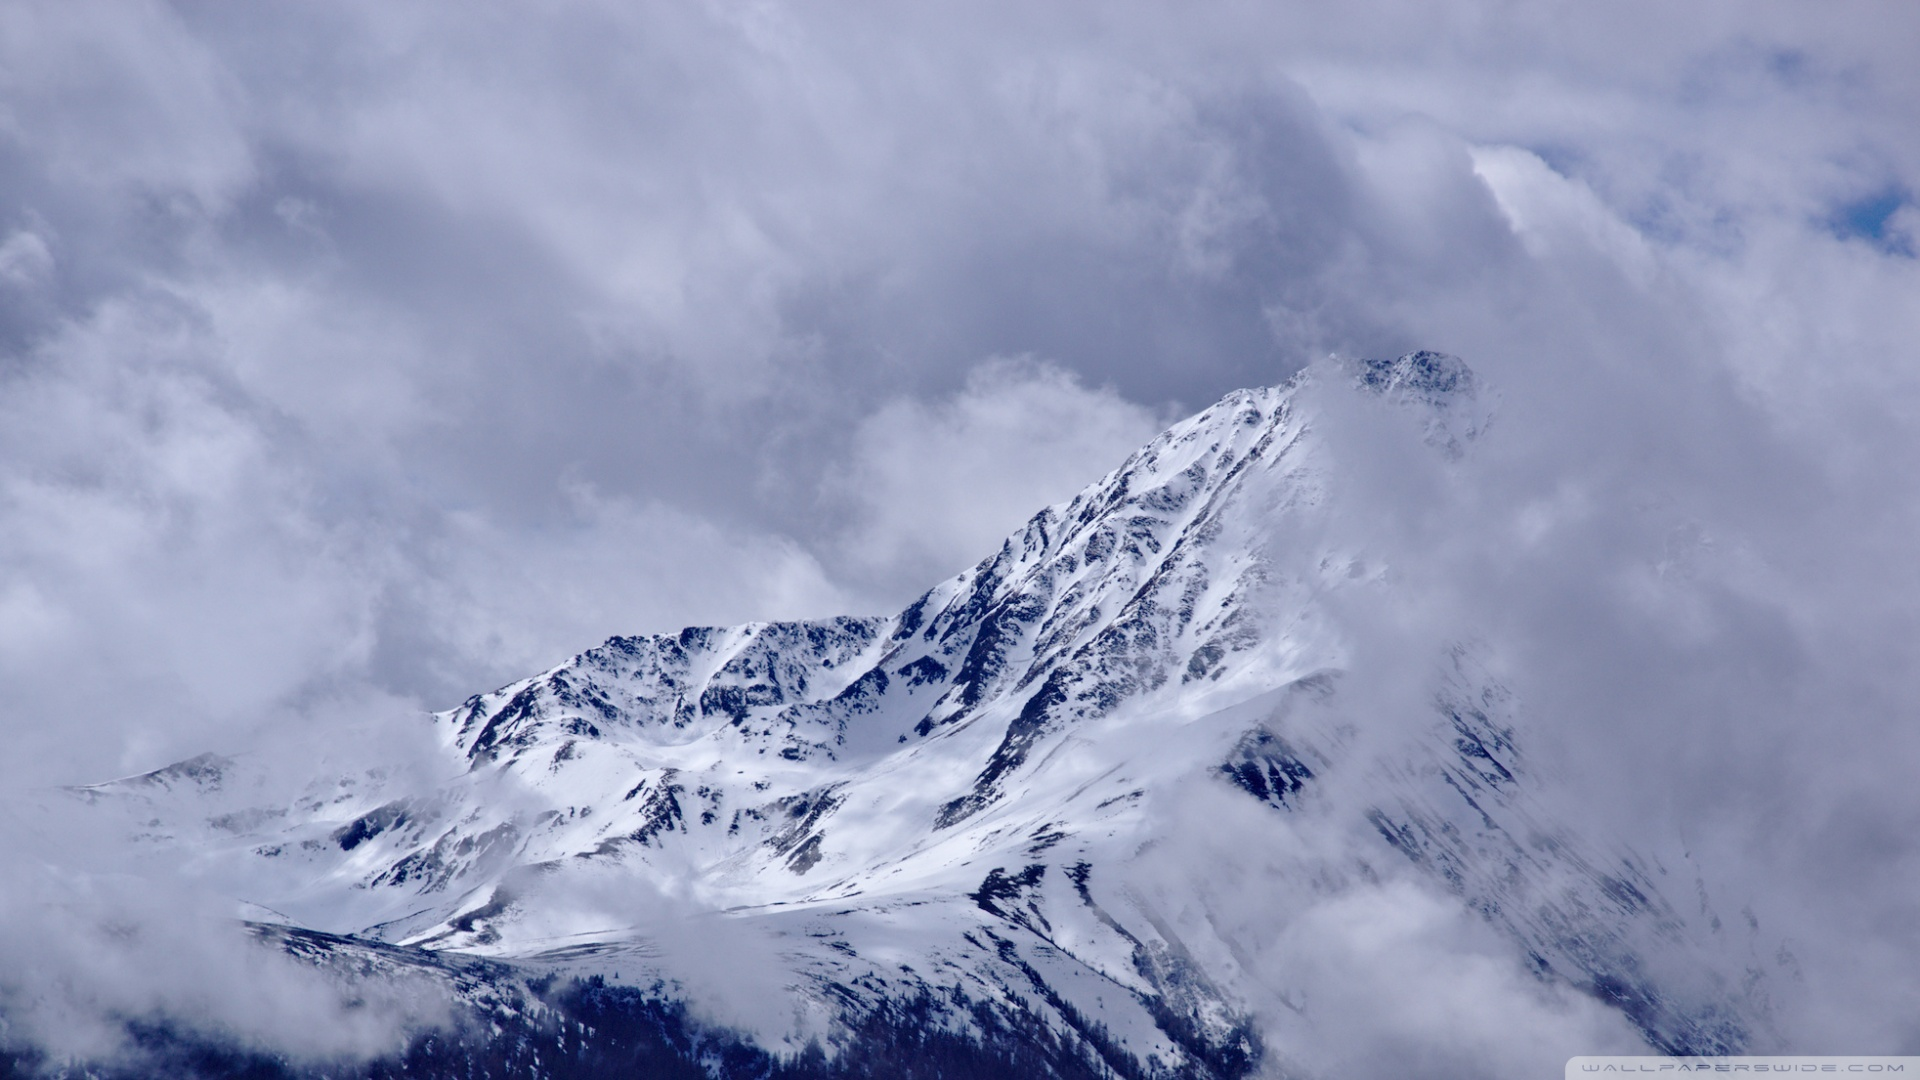 Download Free WallpaperMountain Peak With Drifting Clouds